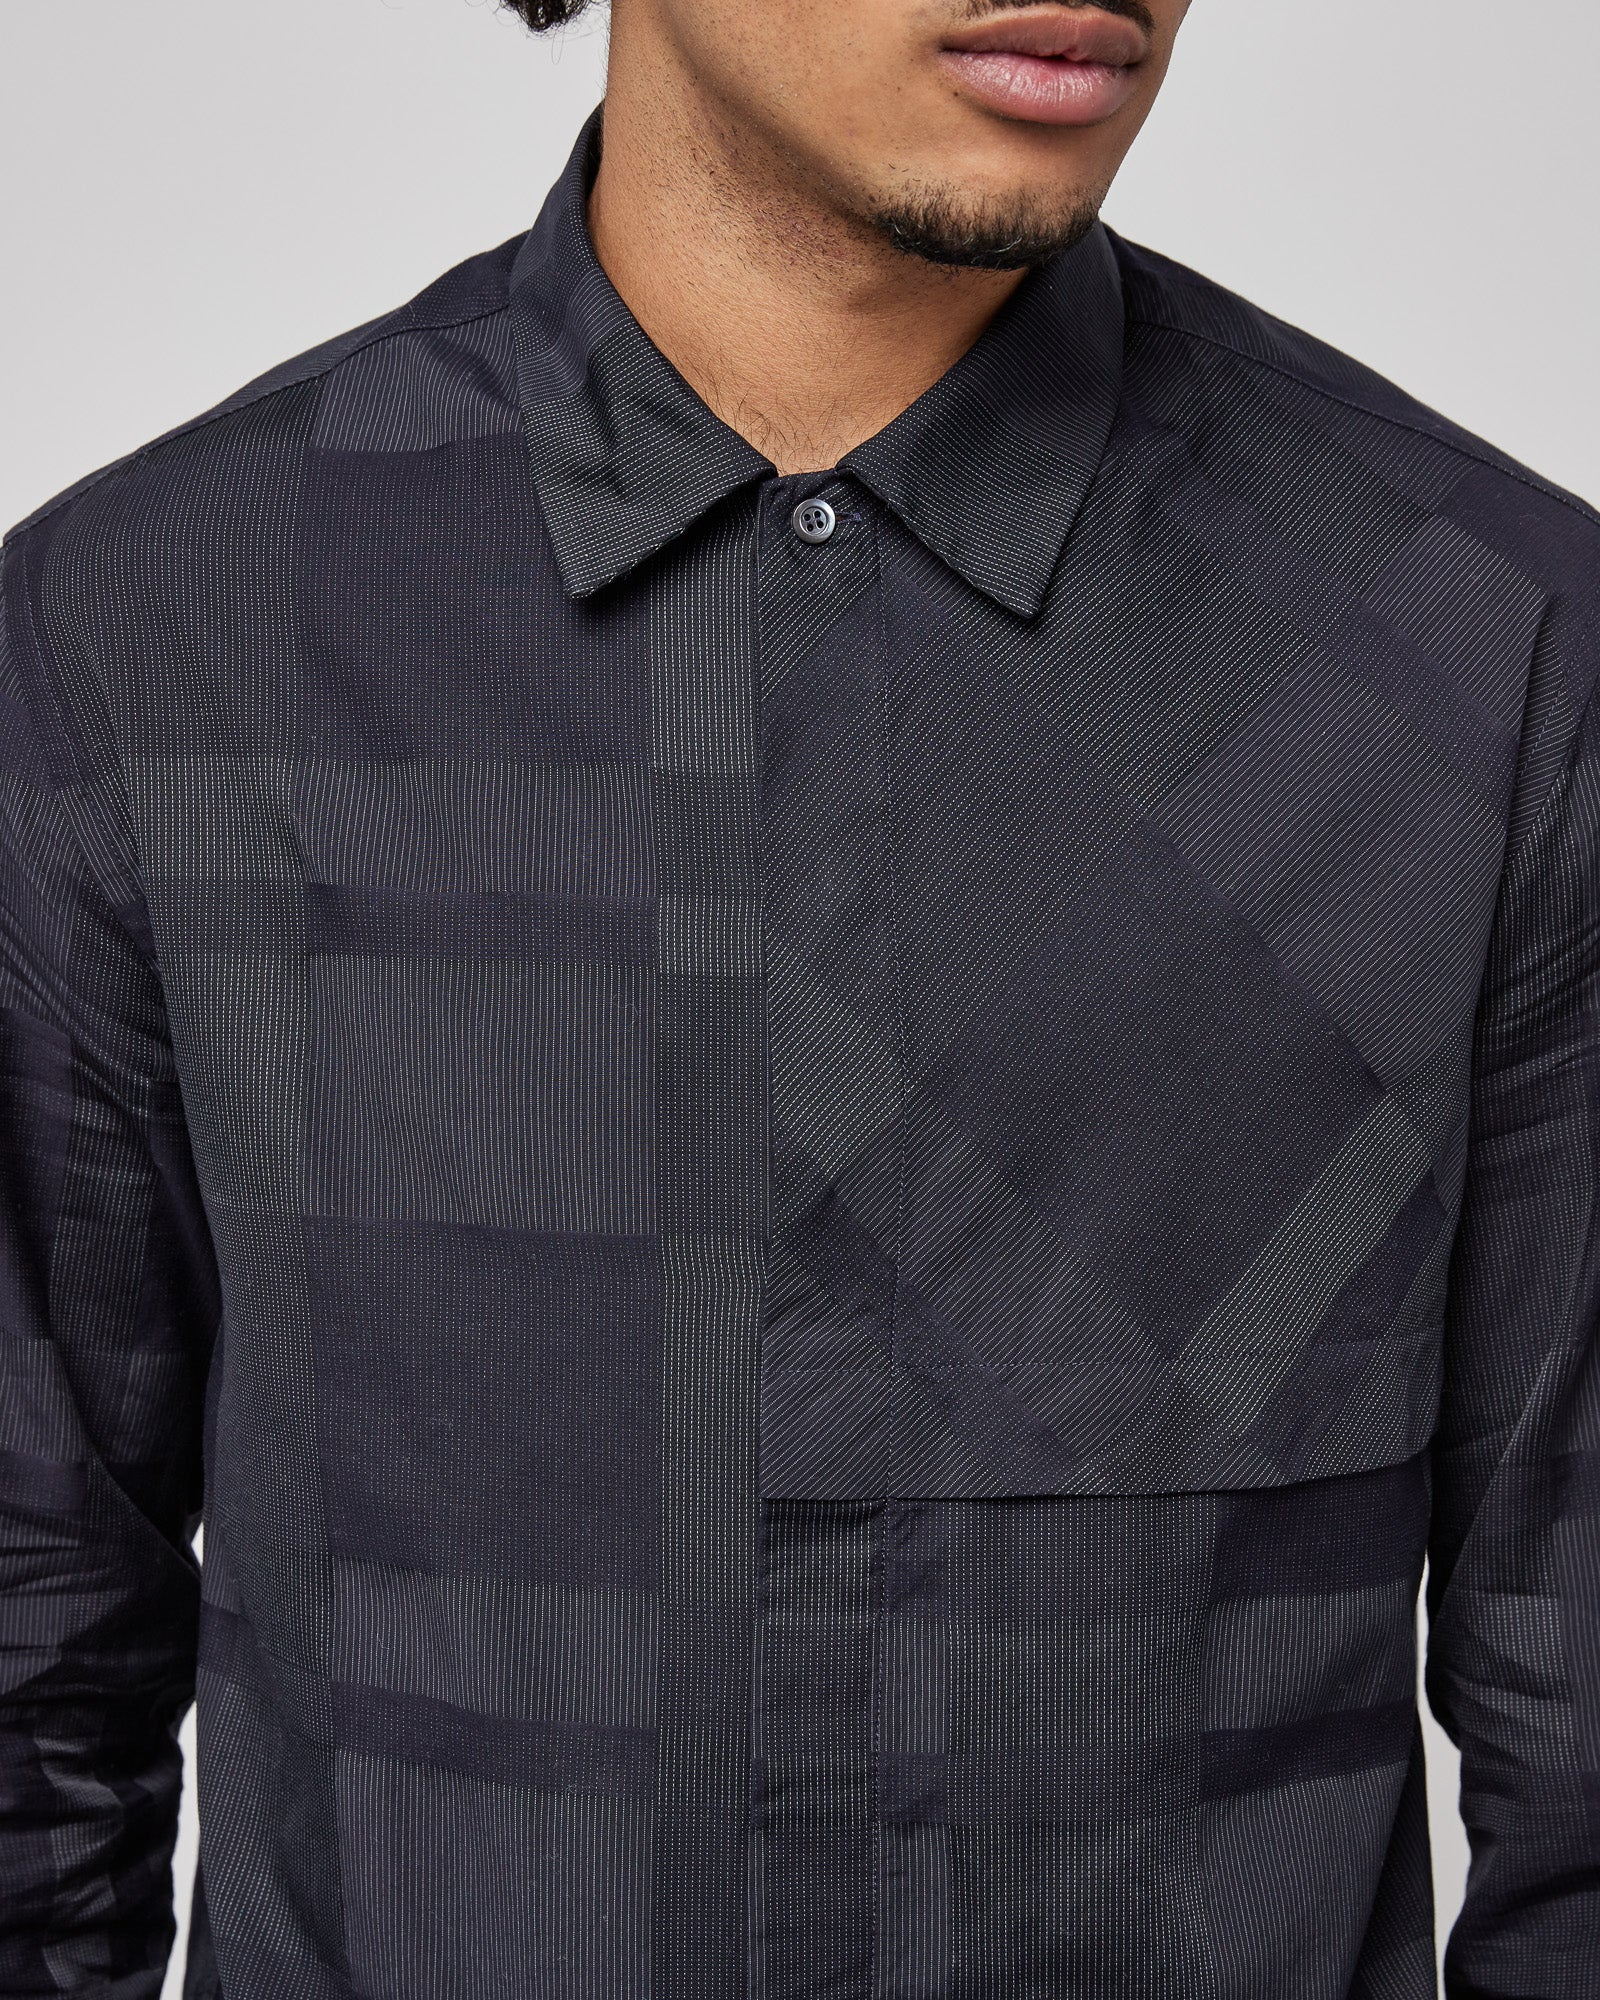 Bufalcana Shirt in Navy